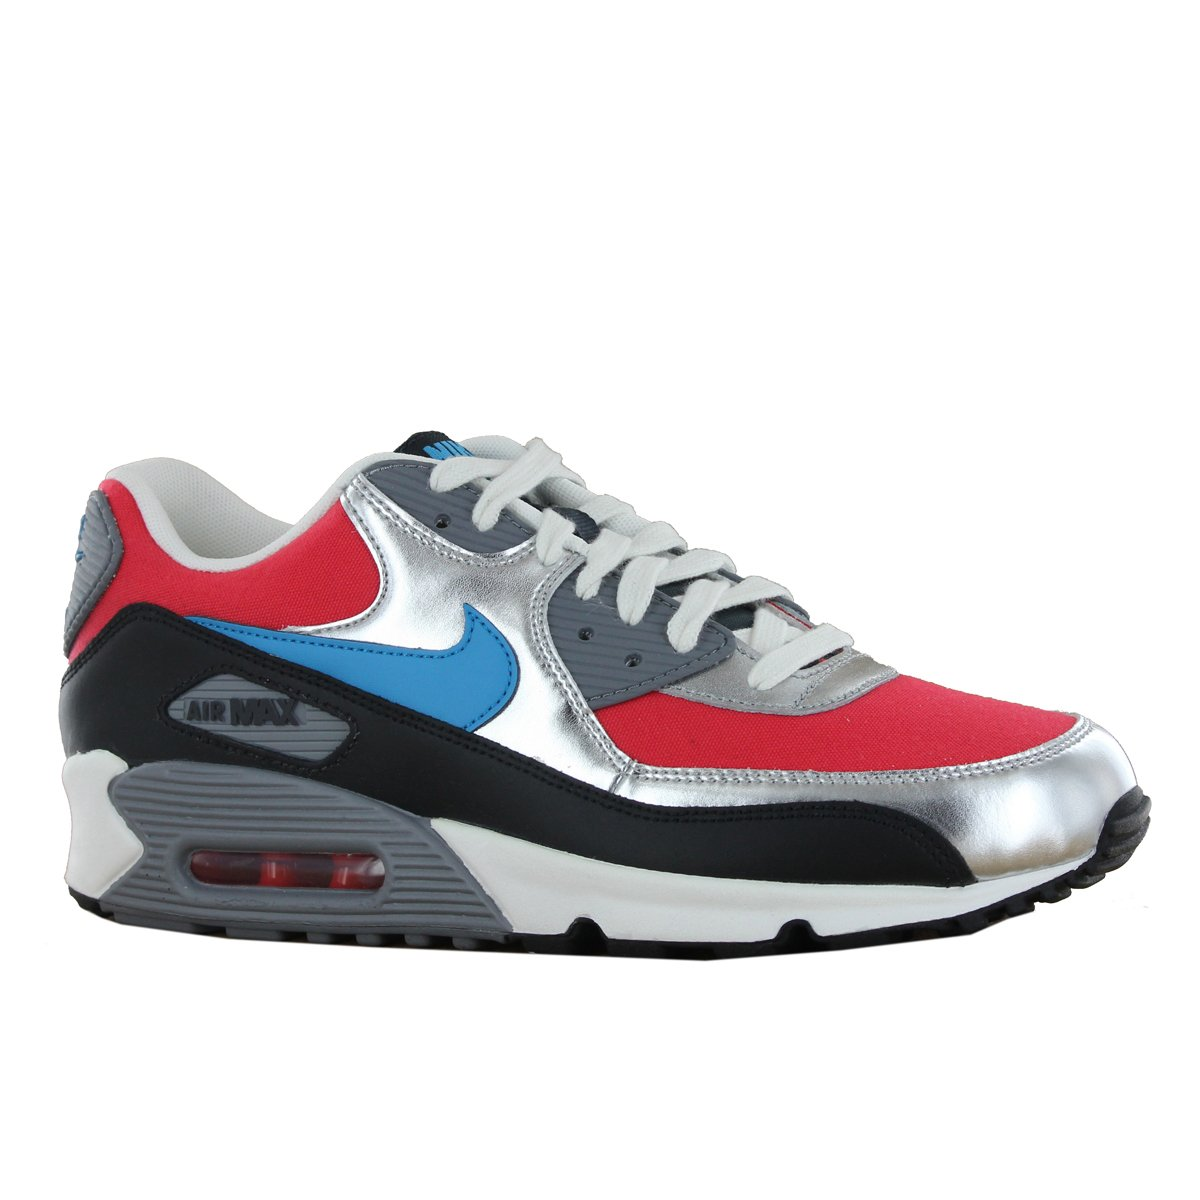 info for 71d3d 16e3e Amazon.com  NIKE Wmns Air Max 90 Silver Hyper Red Turquoise (325213-607)  (5.5 B(M) US)  Track  Field  Cross Country